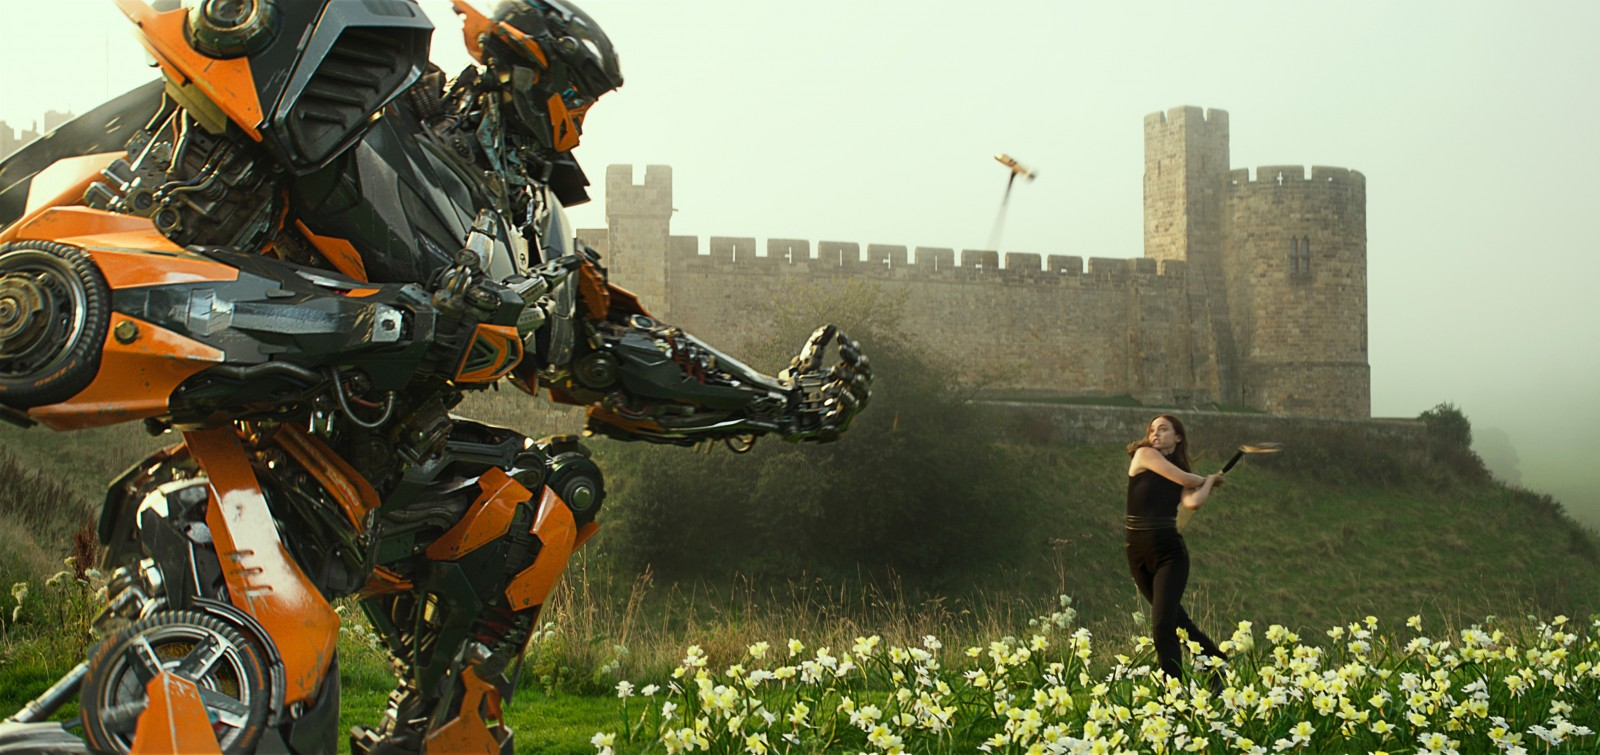 Transformers News: New High Res Transformers: The Last Knight Images From Micheal Bay